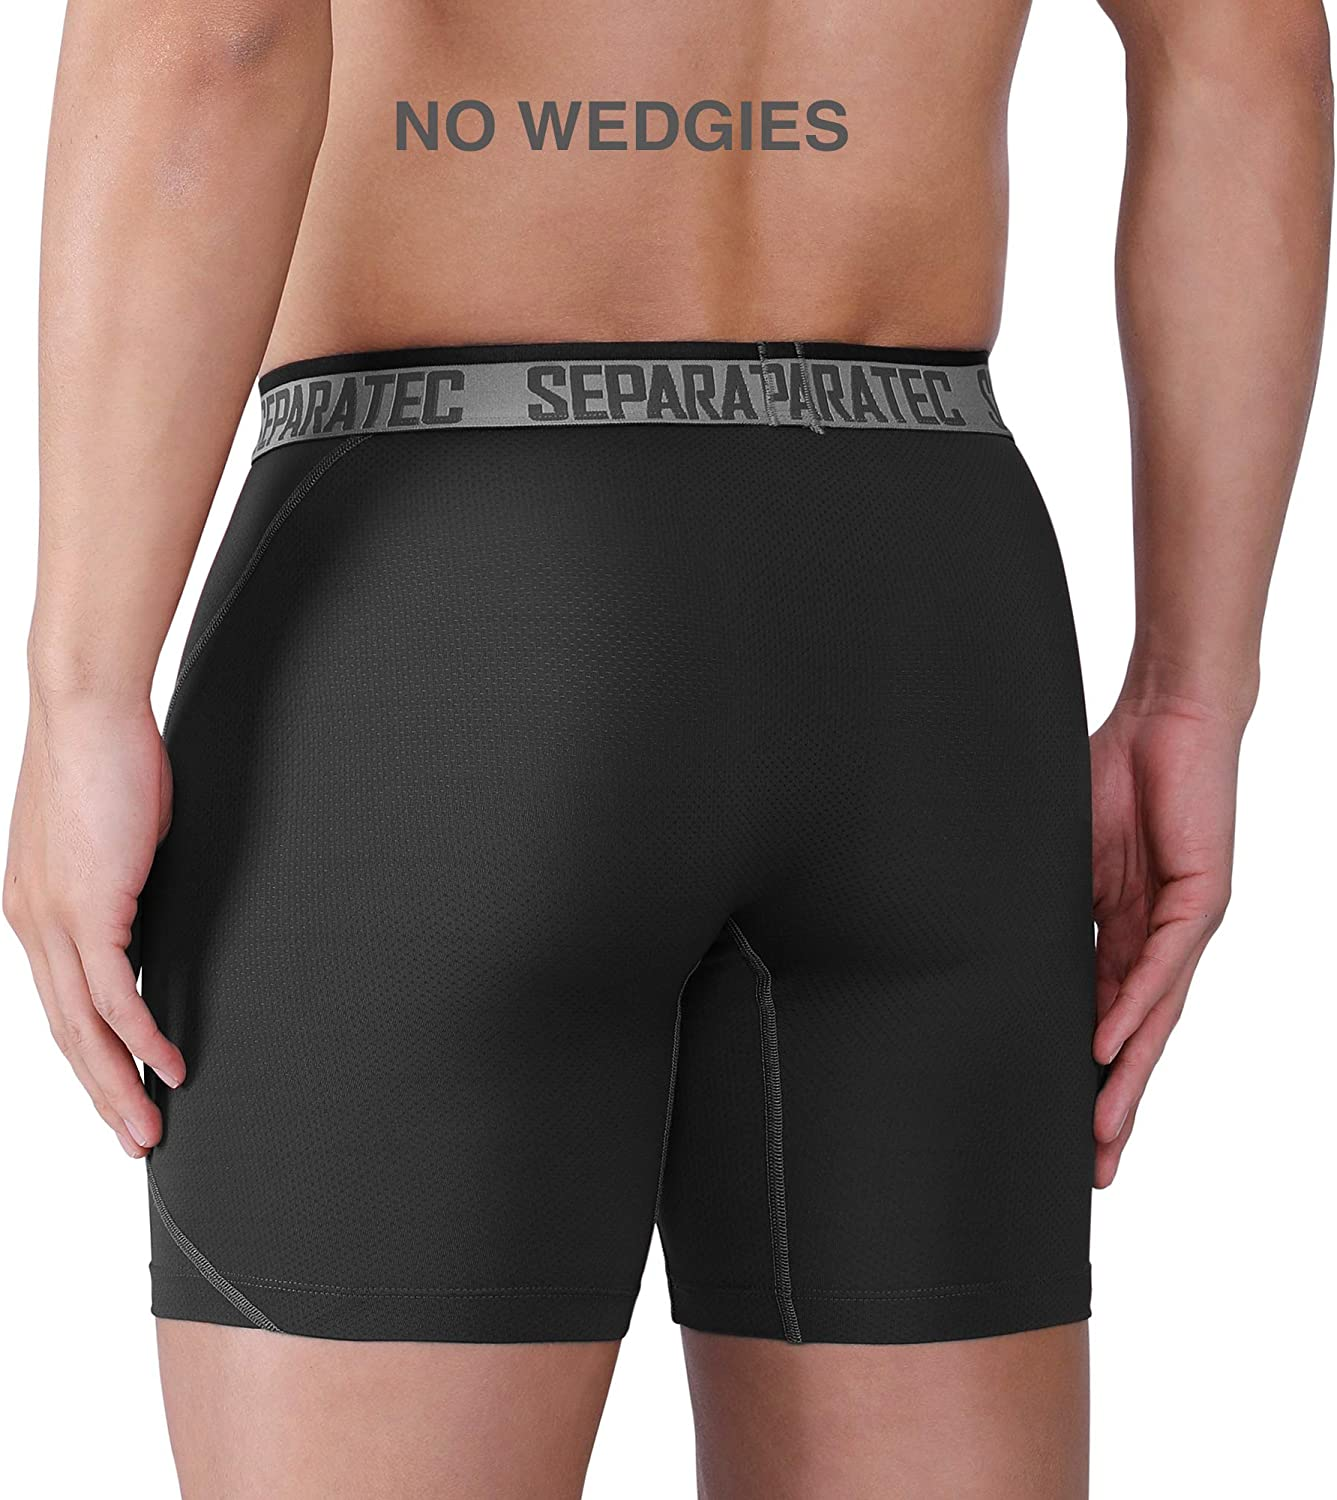 Separatec Mens Performance Sports Underwear 3 Pack Quick Dry Sports Boxer Shorts with Separate Pouches and Fly Breathable Boxers Briefs